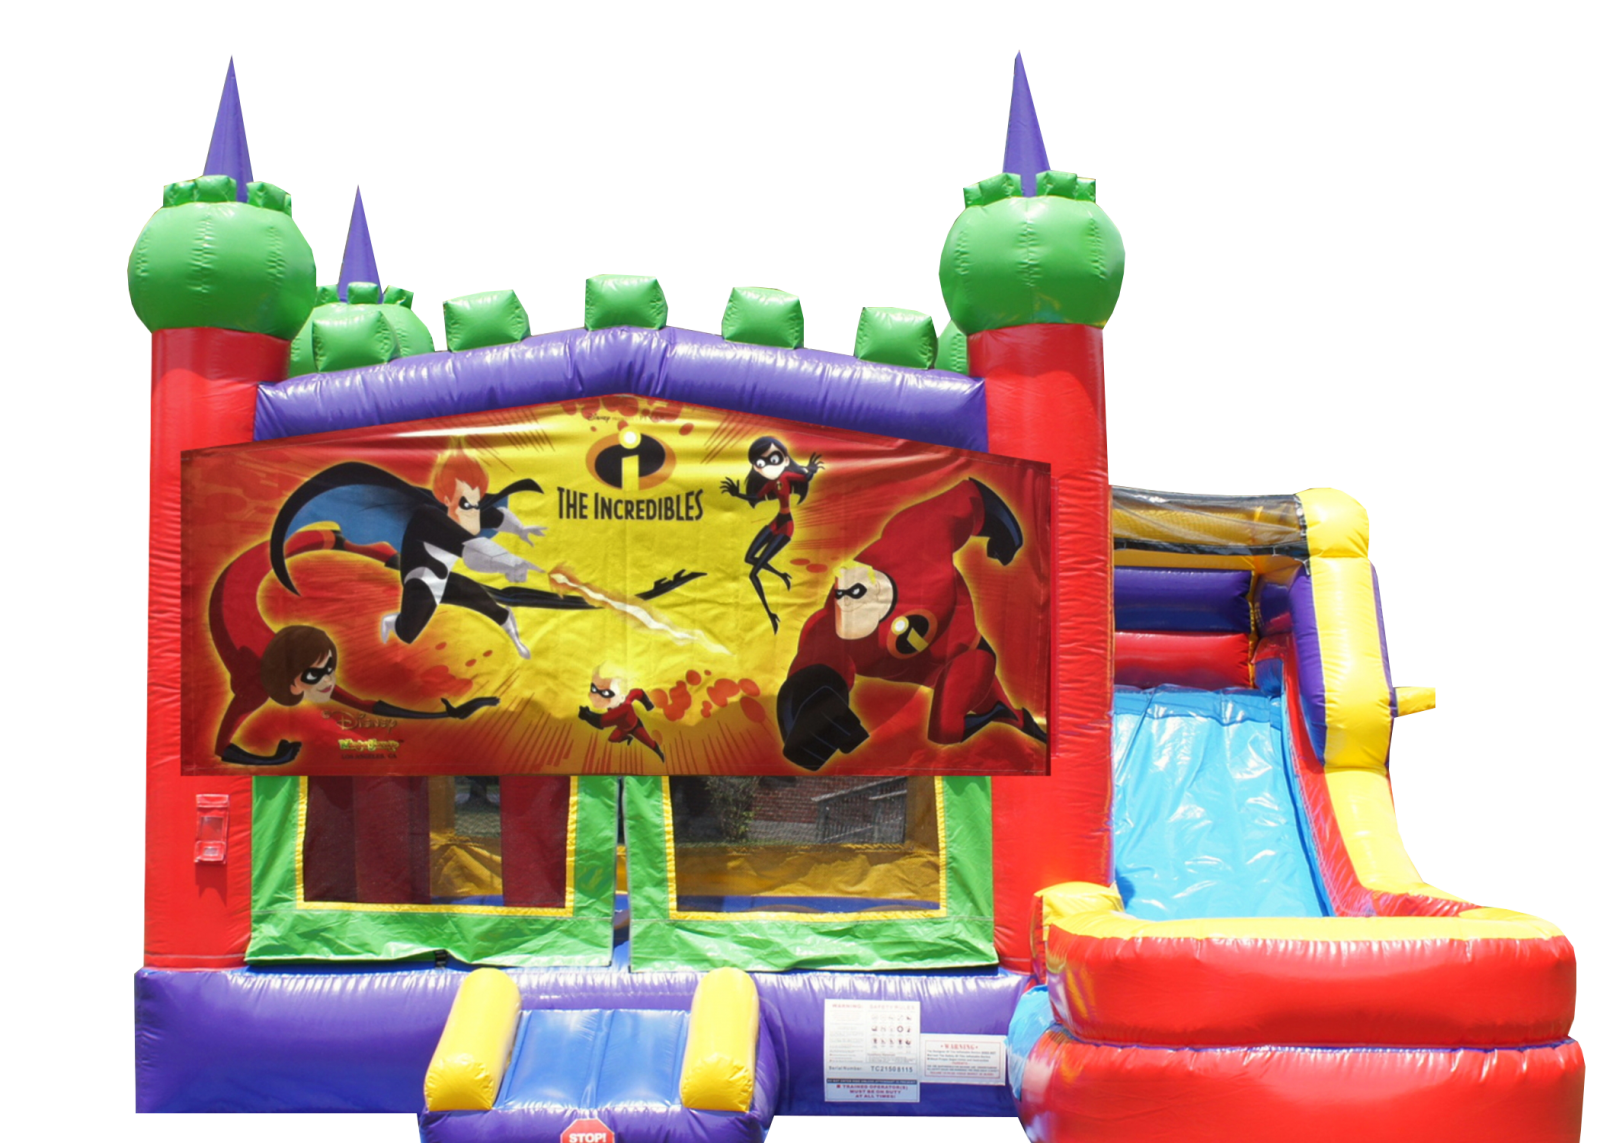 The Incredibles bounce house combo for rent Nashville Tn Jumping Hearts Party Rentals